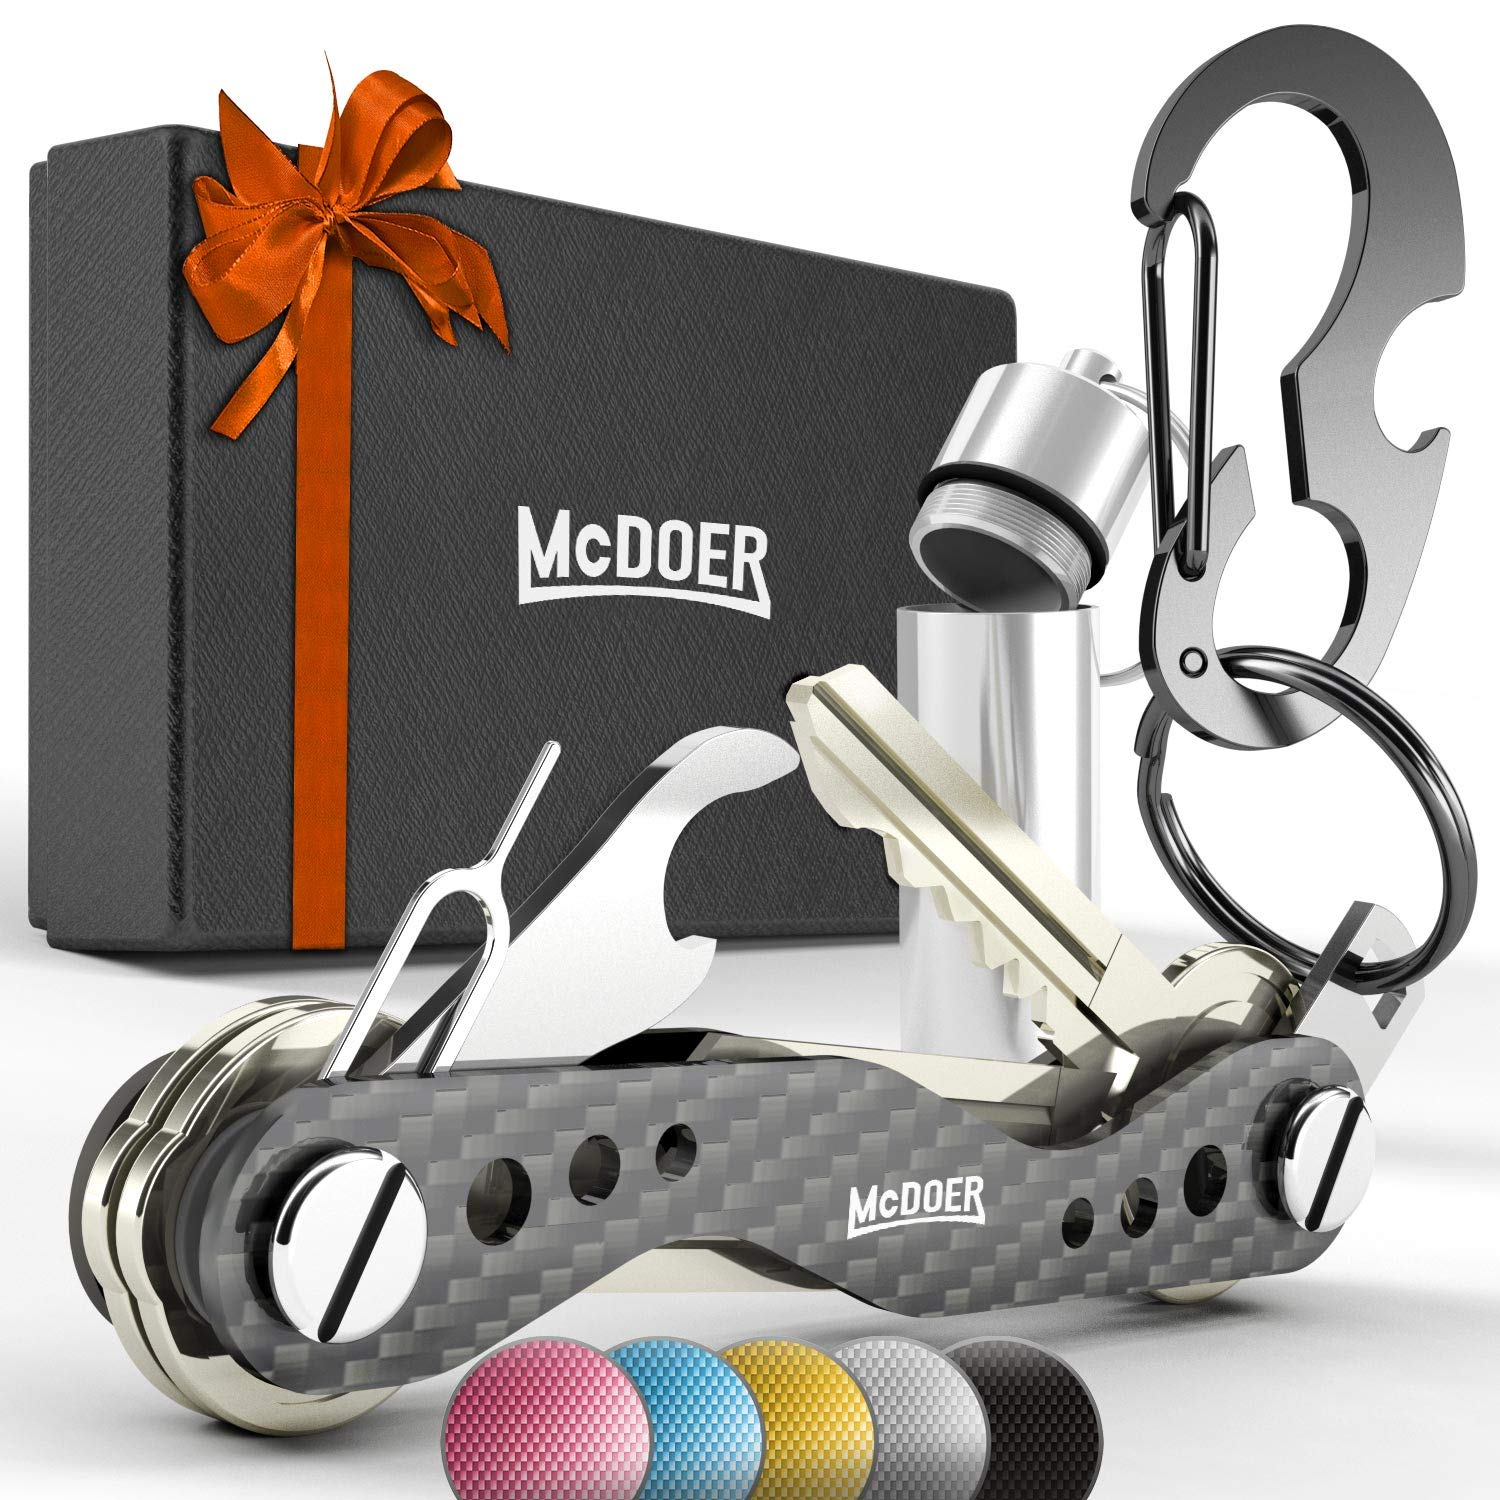 Smart Key chain Organizer - Gift Ideas for mentors